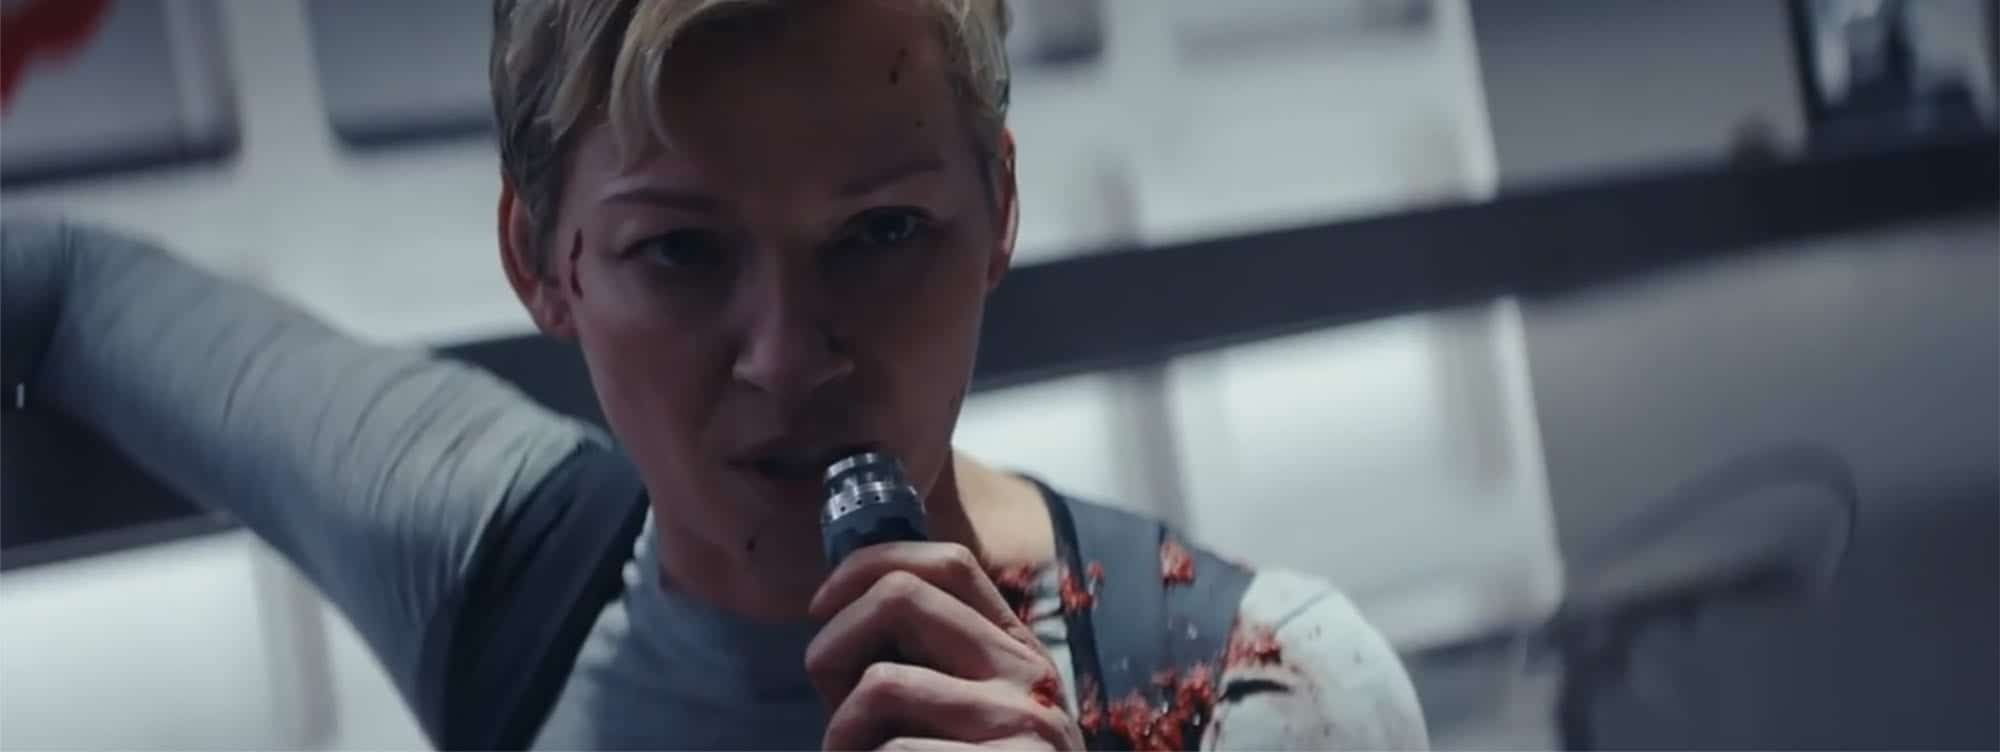 Set in the year 2093, 'Nightflyers' is a psychological thriller following a team of scientists aboard a spaceship as they journey to find other life forms.